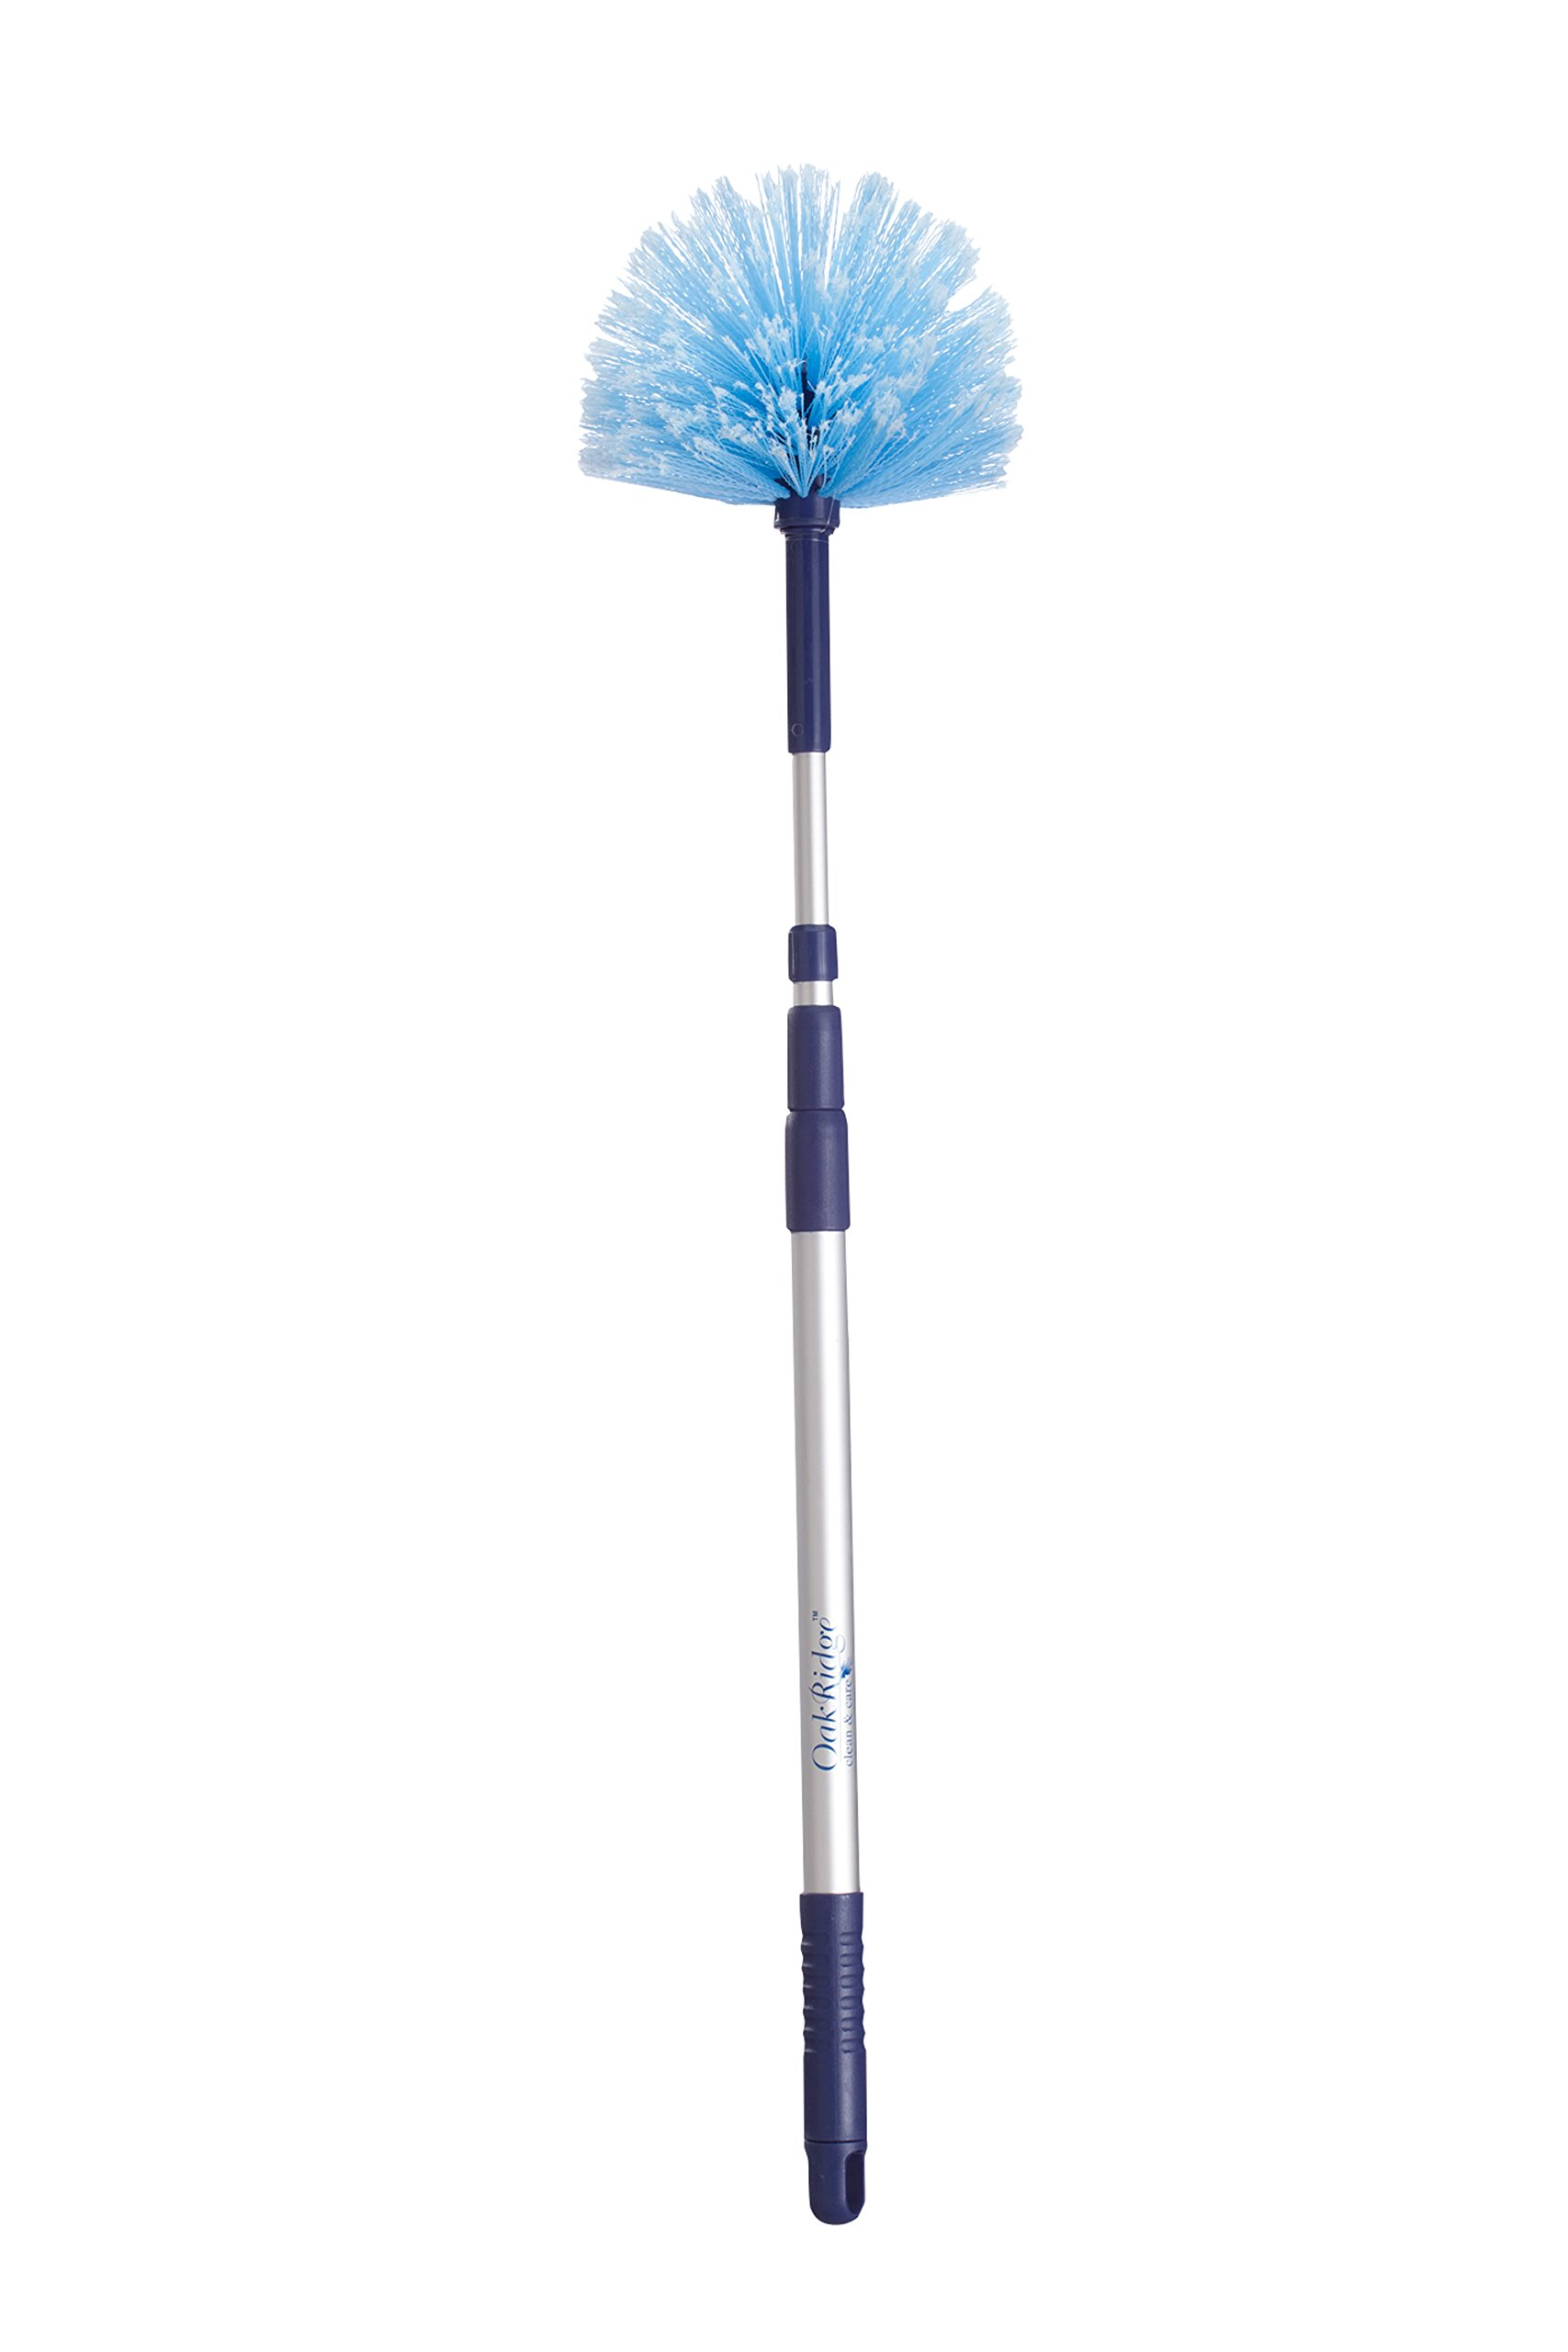 Miles Kimball Long Reach Telescoping Duster by OakRidge